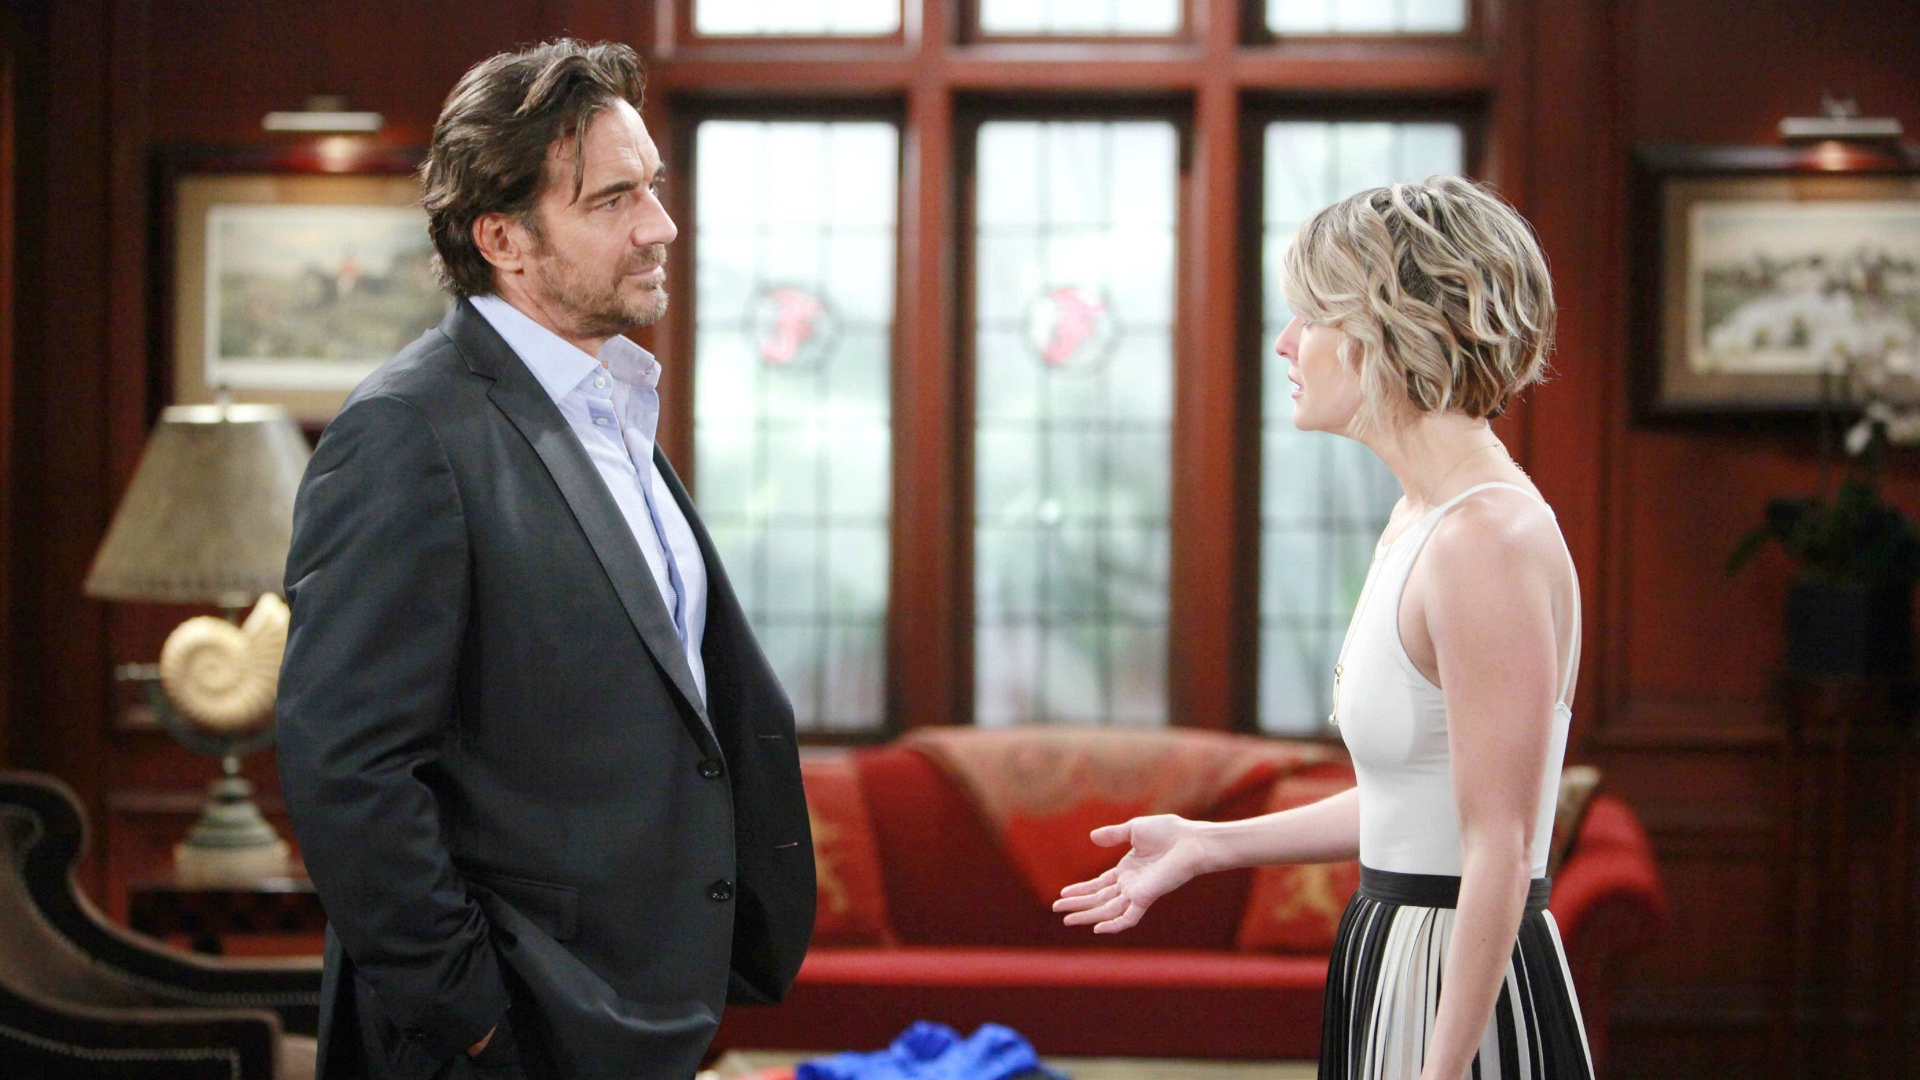 Ridge and Caroline's happy life begins to unravel before them when someone threatens to reveal their secret.